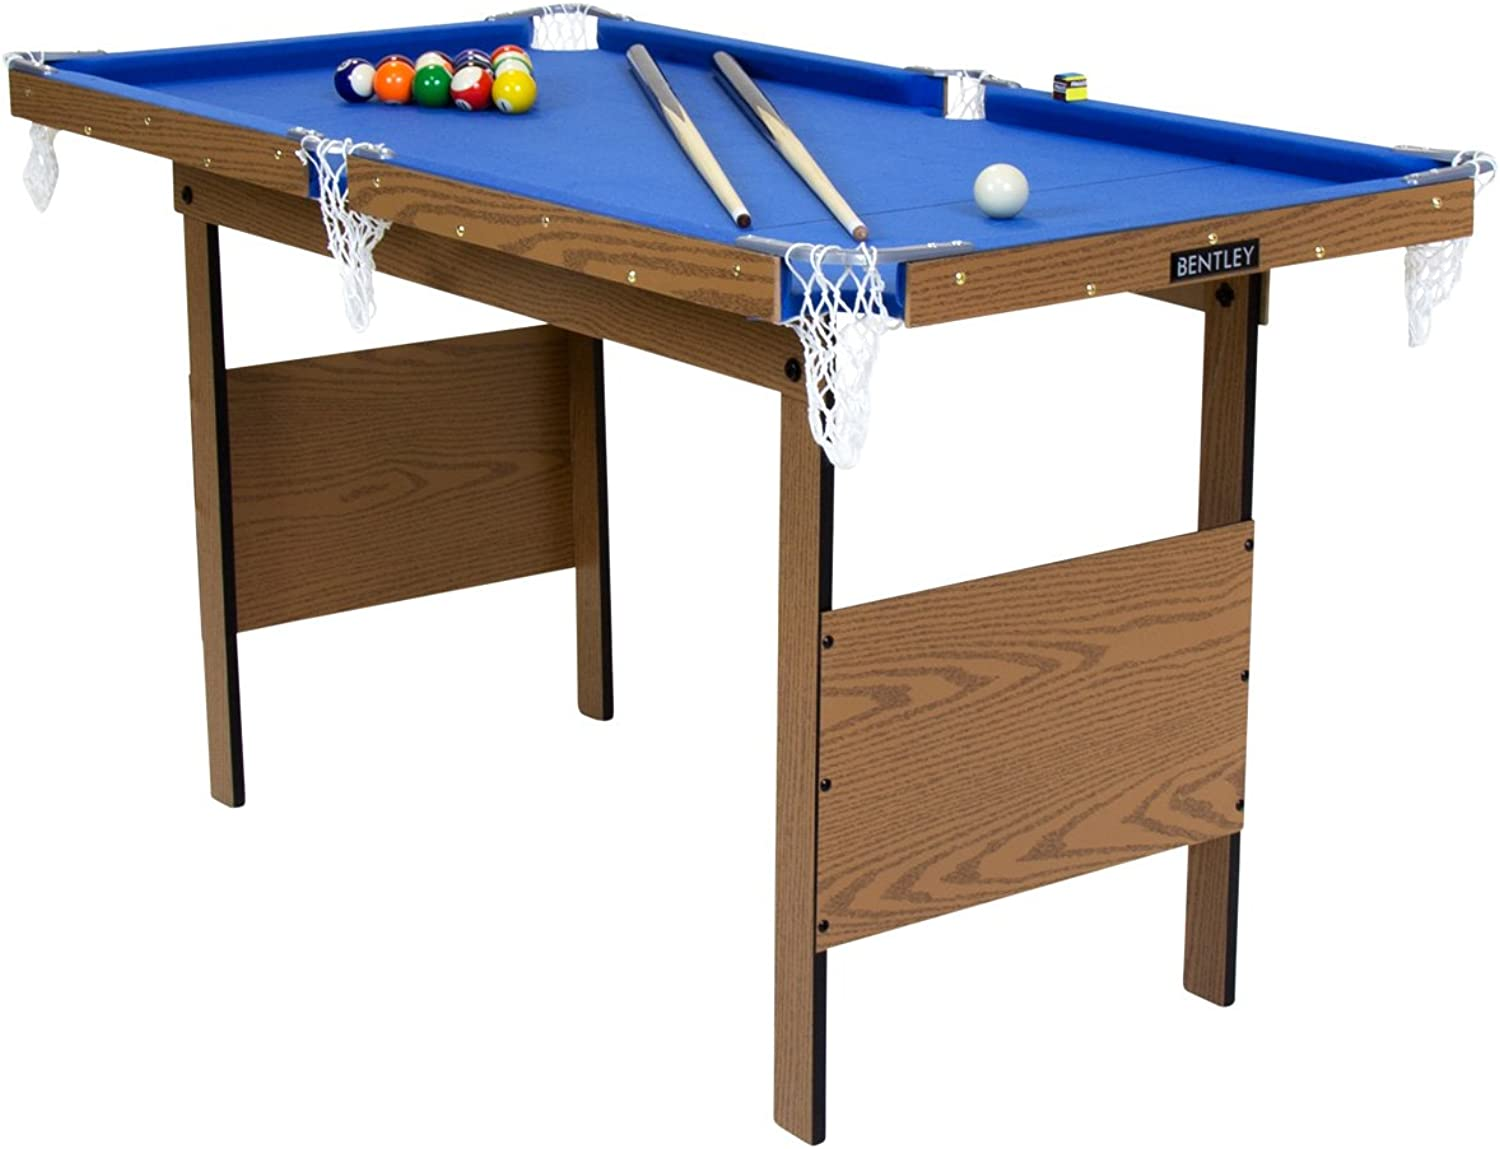 Charles Bentley Kids Junior 4Ft bluee Pool Games Table With Spots & Stripes Pool Balls & 2 Cues Indoor INCLUDES ALL ACCESSORIES